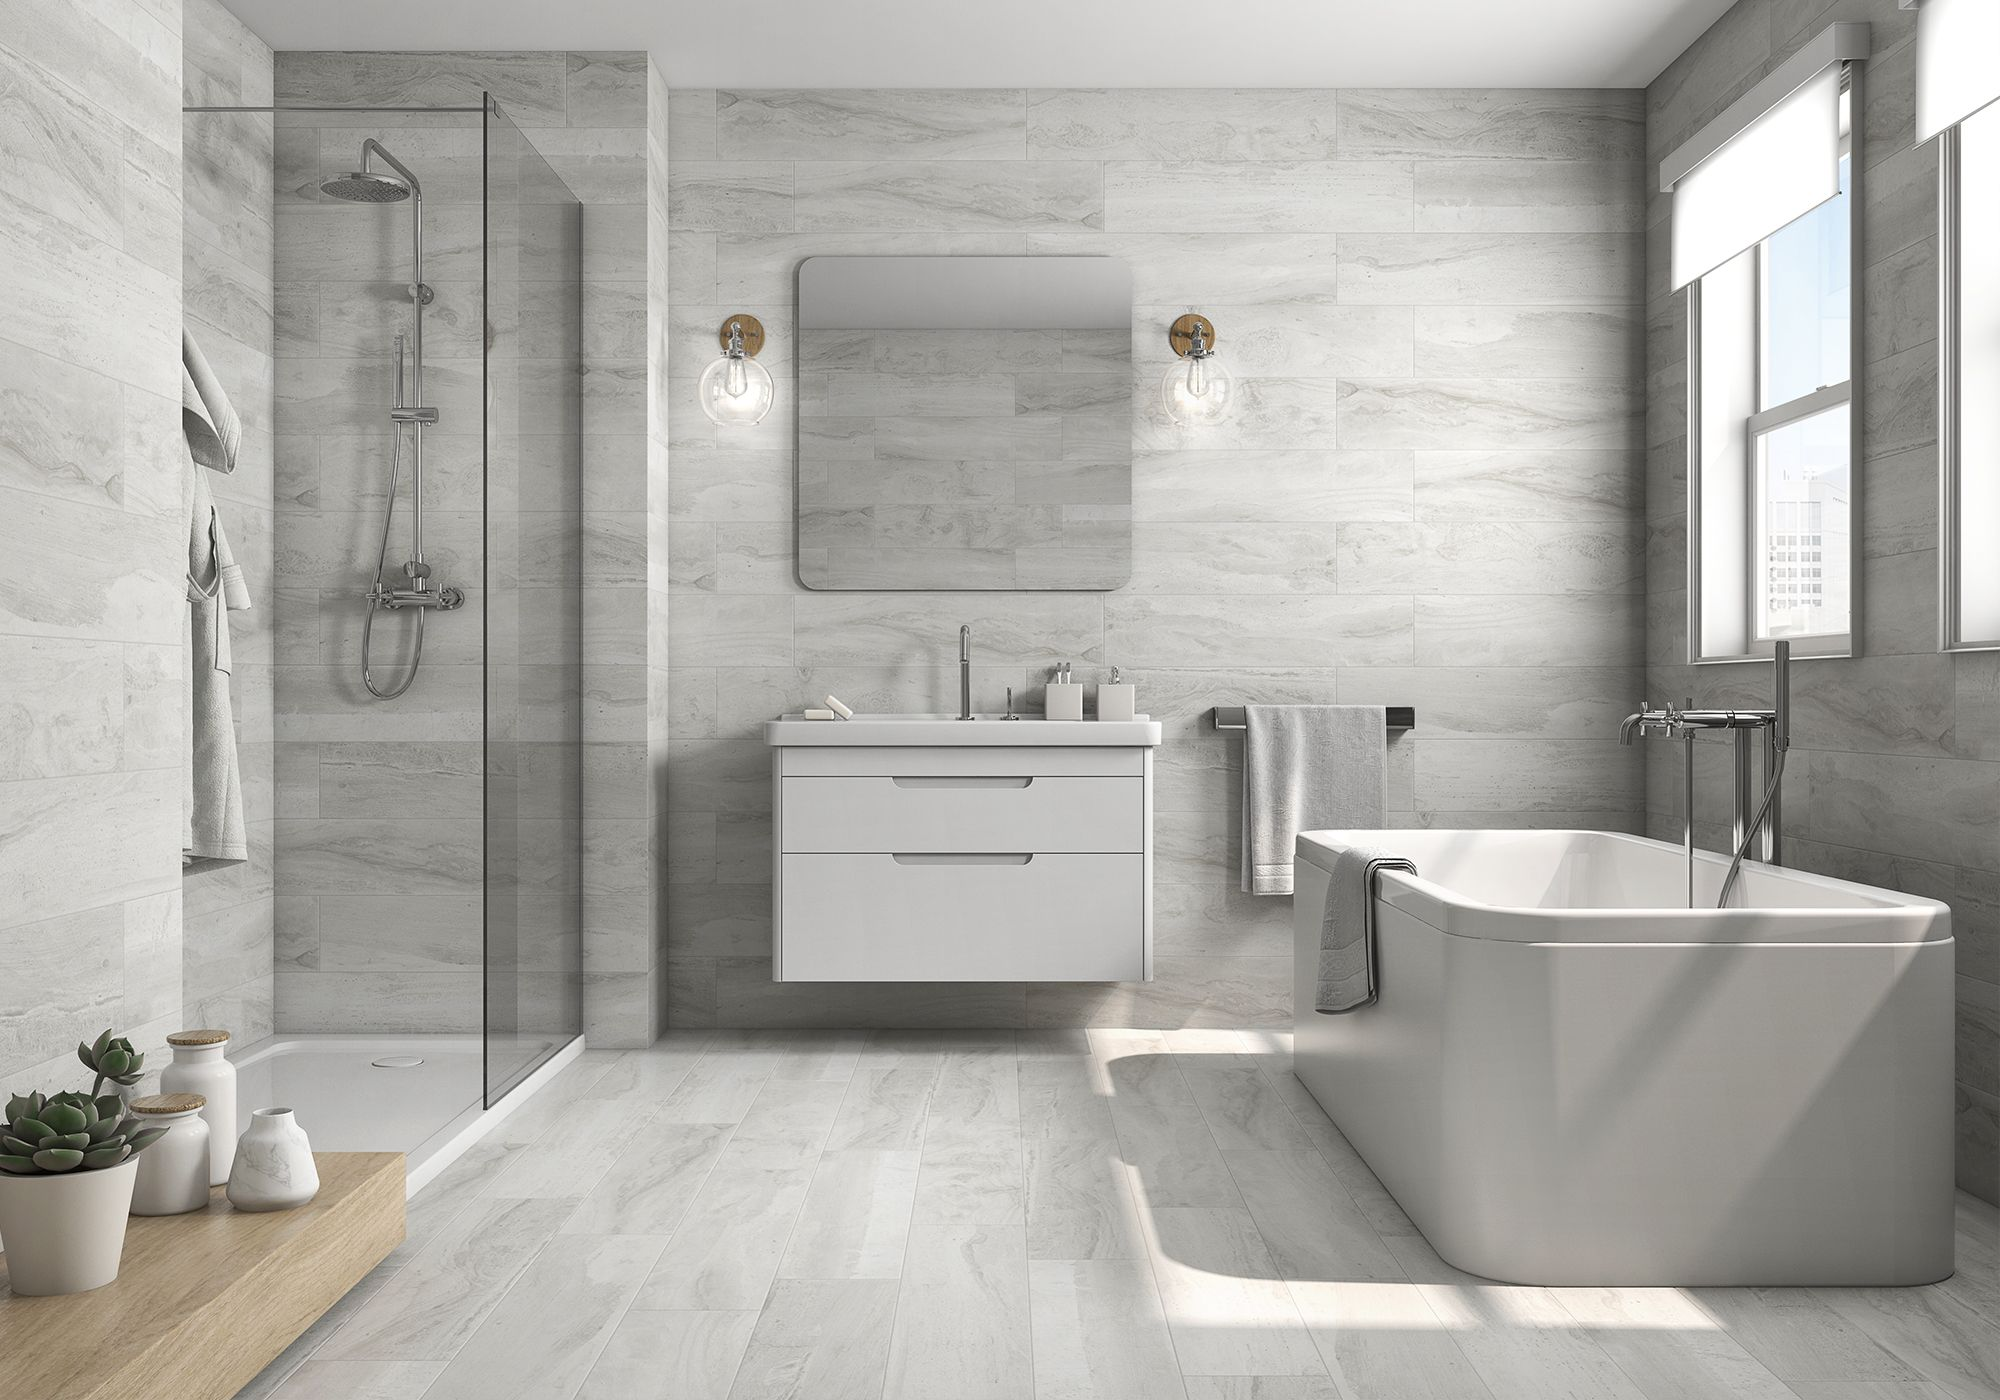 Fossil White Glazed Porcelain By Roca Http Rocatilegroup Com Products Fossil Tile Bathroom Wood Grain Tile Stone Look Tile